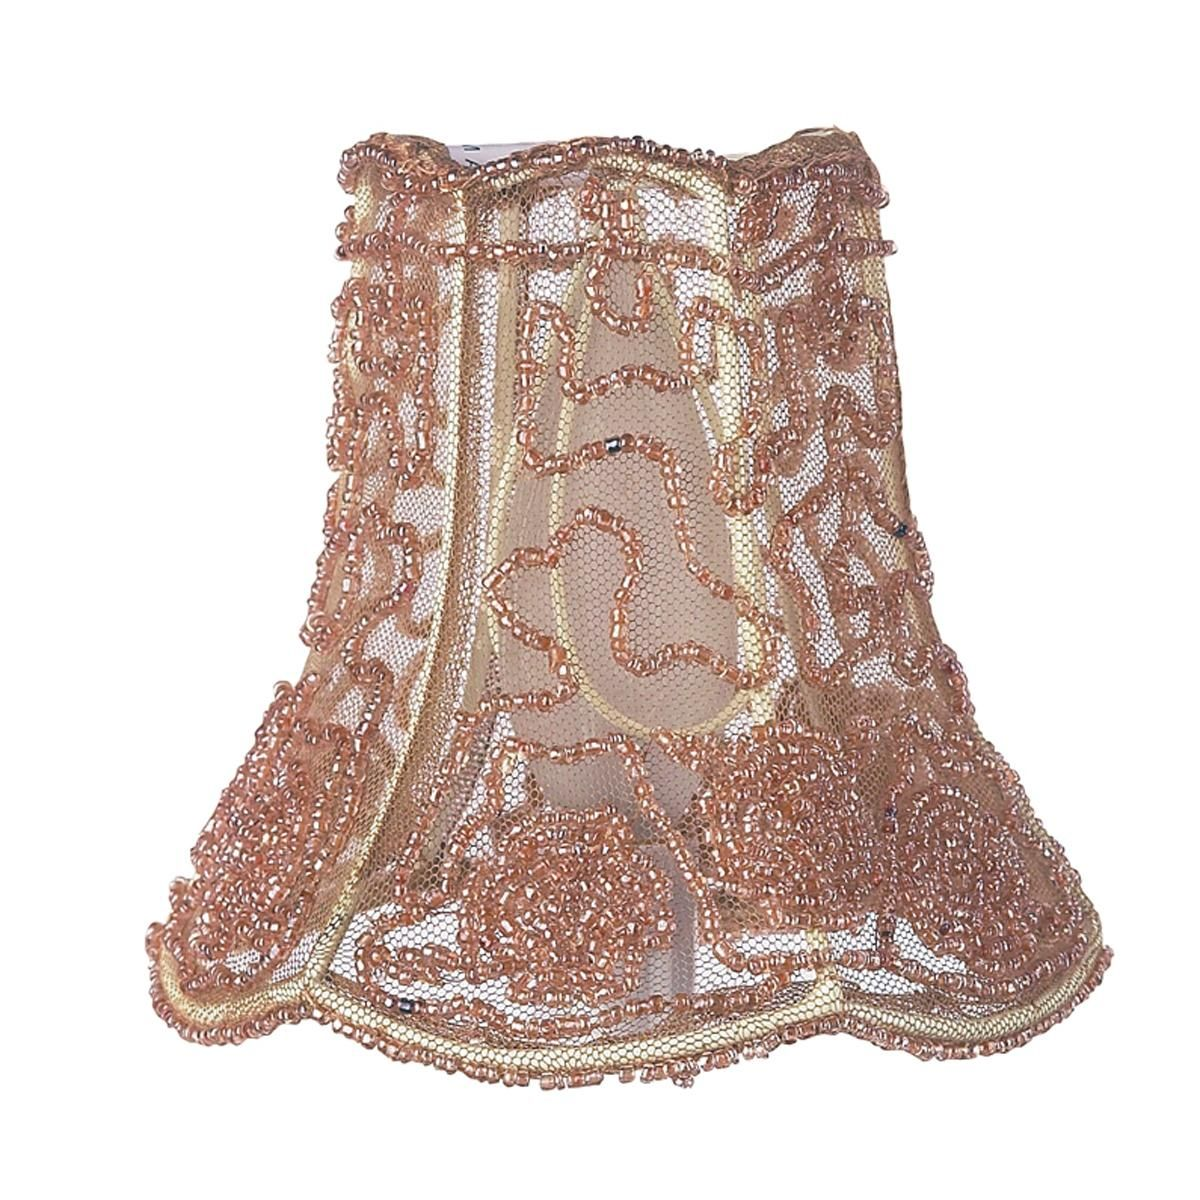 5 embroidered bead and tulle chandelier shade pillowsfabric 5 embroidered bead and tulle chandelier shade arubaitofo Gallery